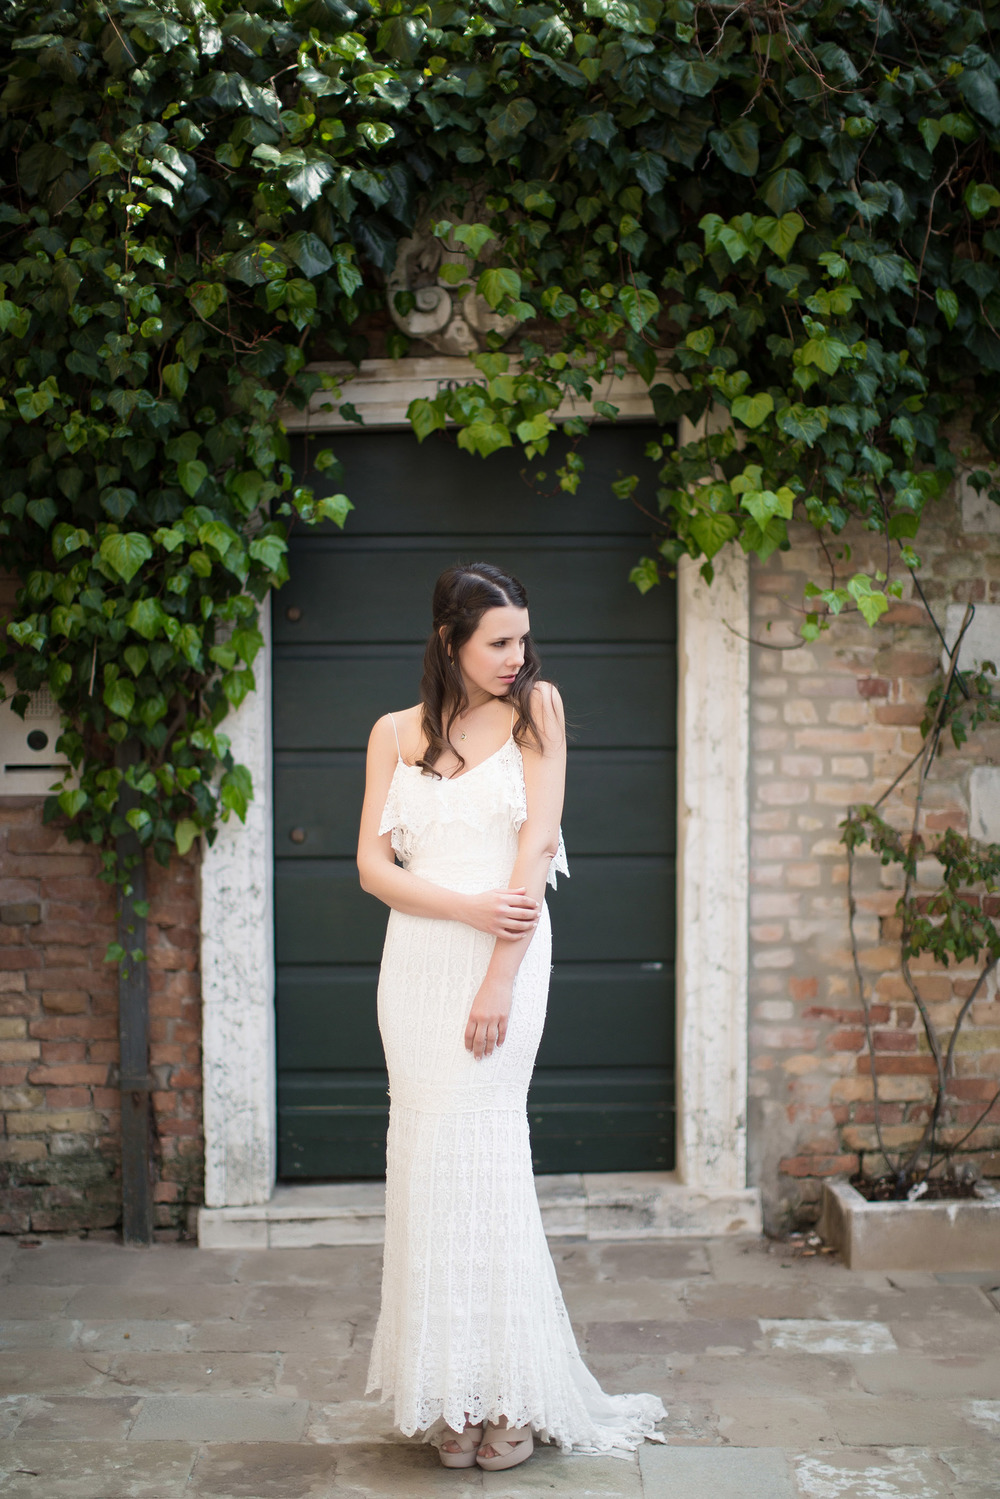 VeniceStyledShoot (126 of 170).jpg